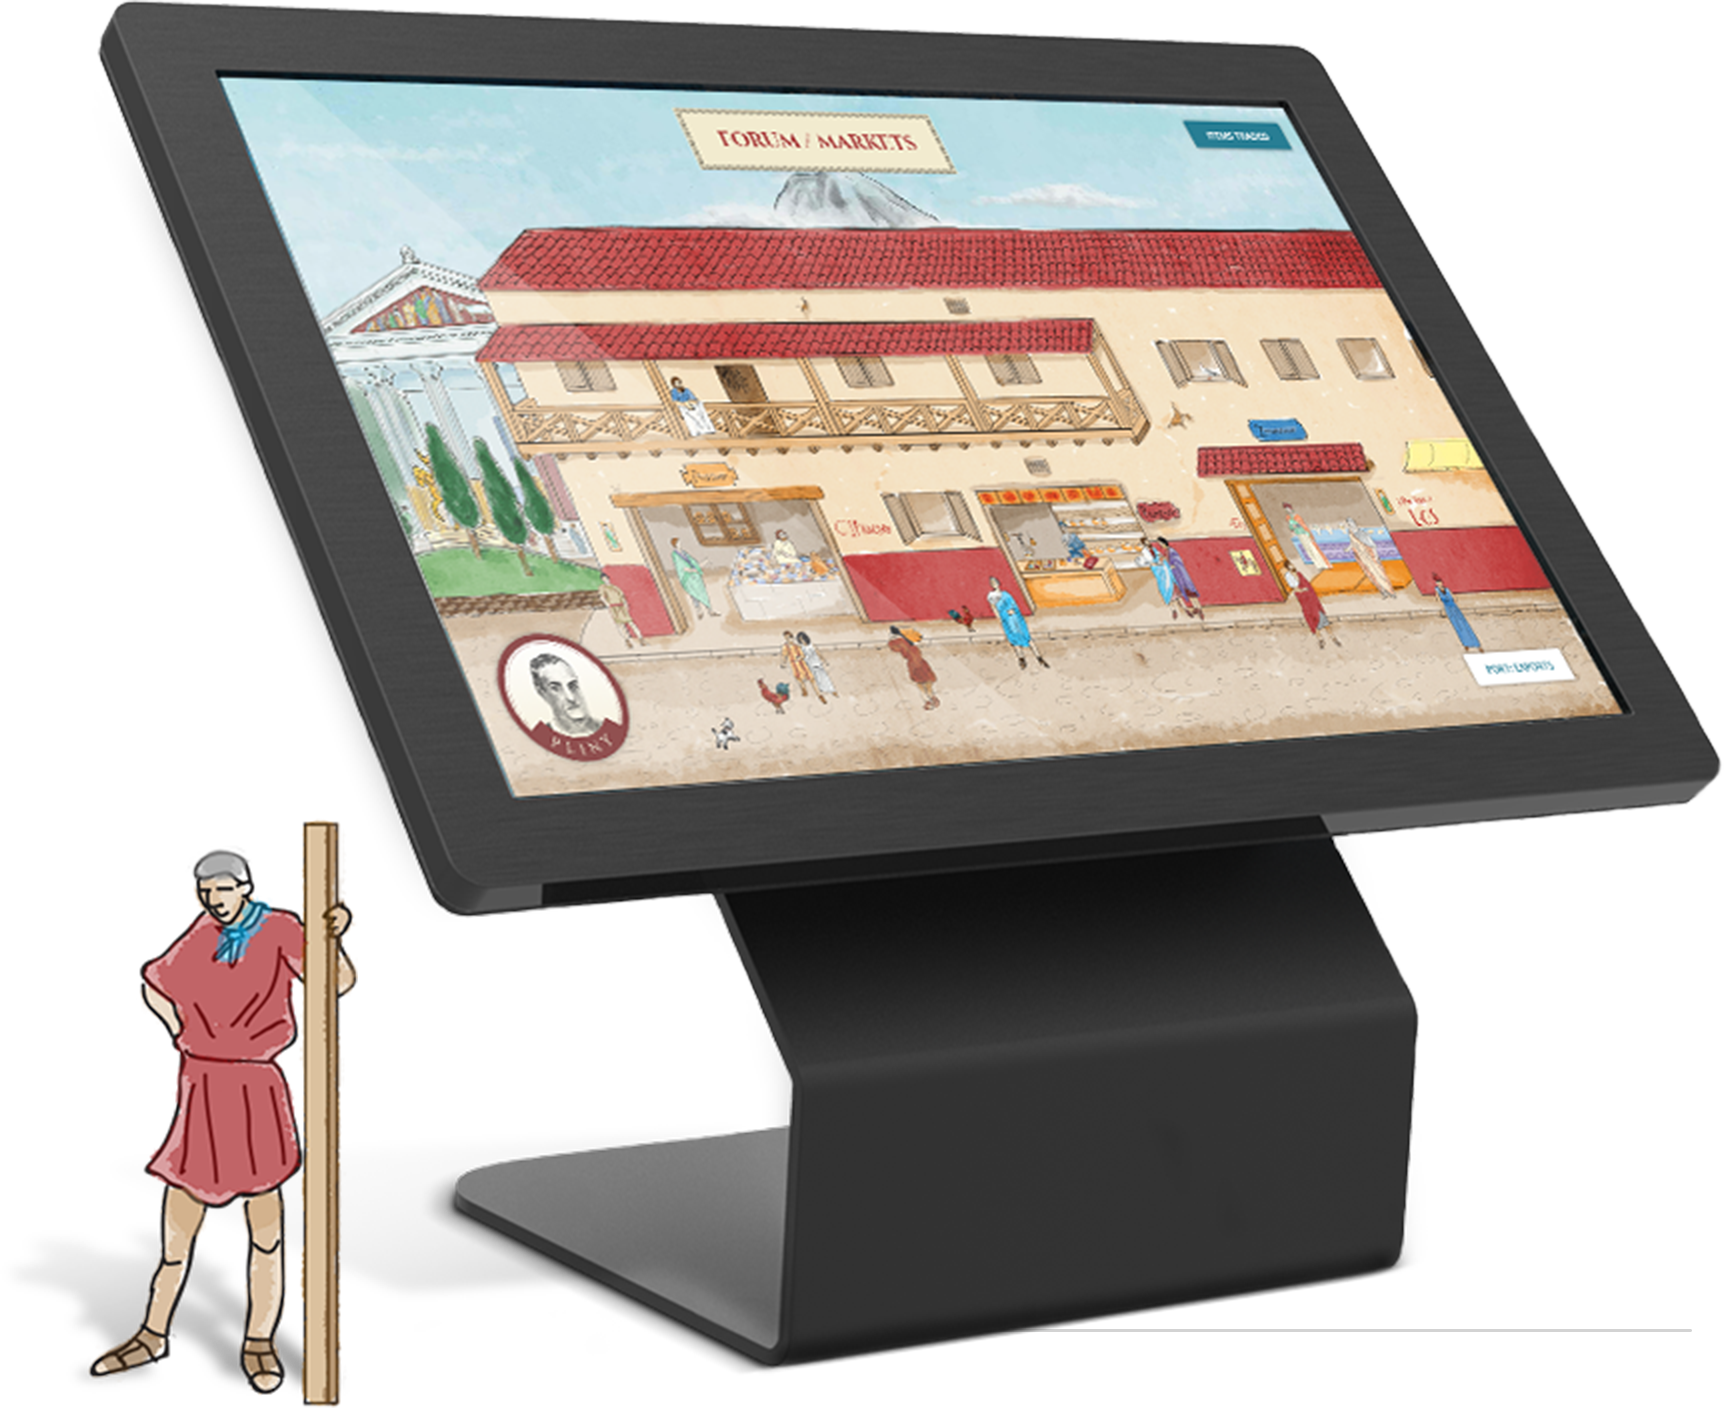 Interactive Touchscreen Kiosk